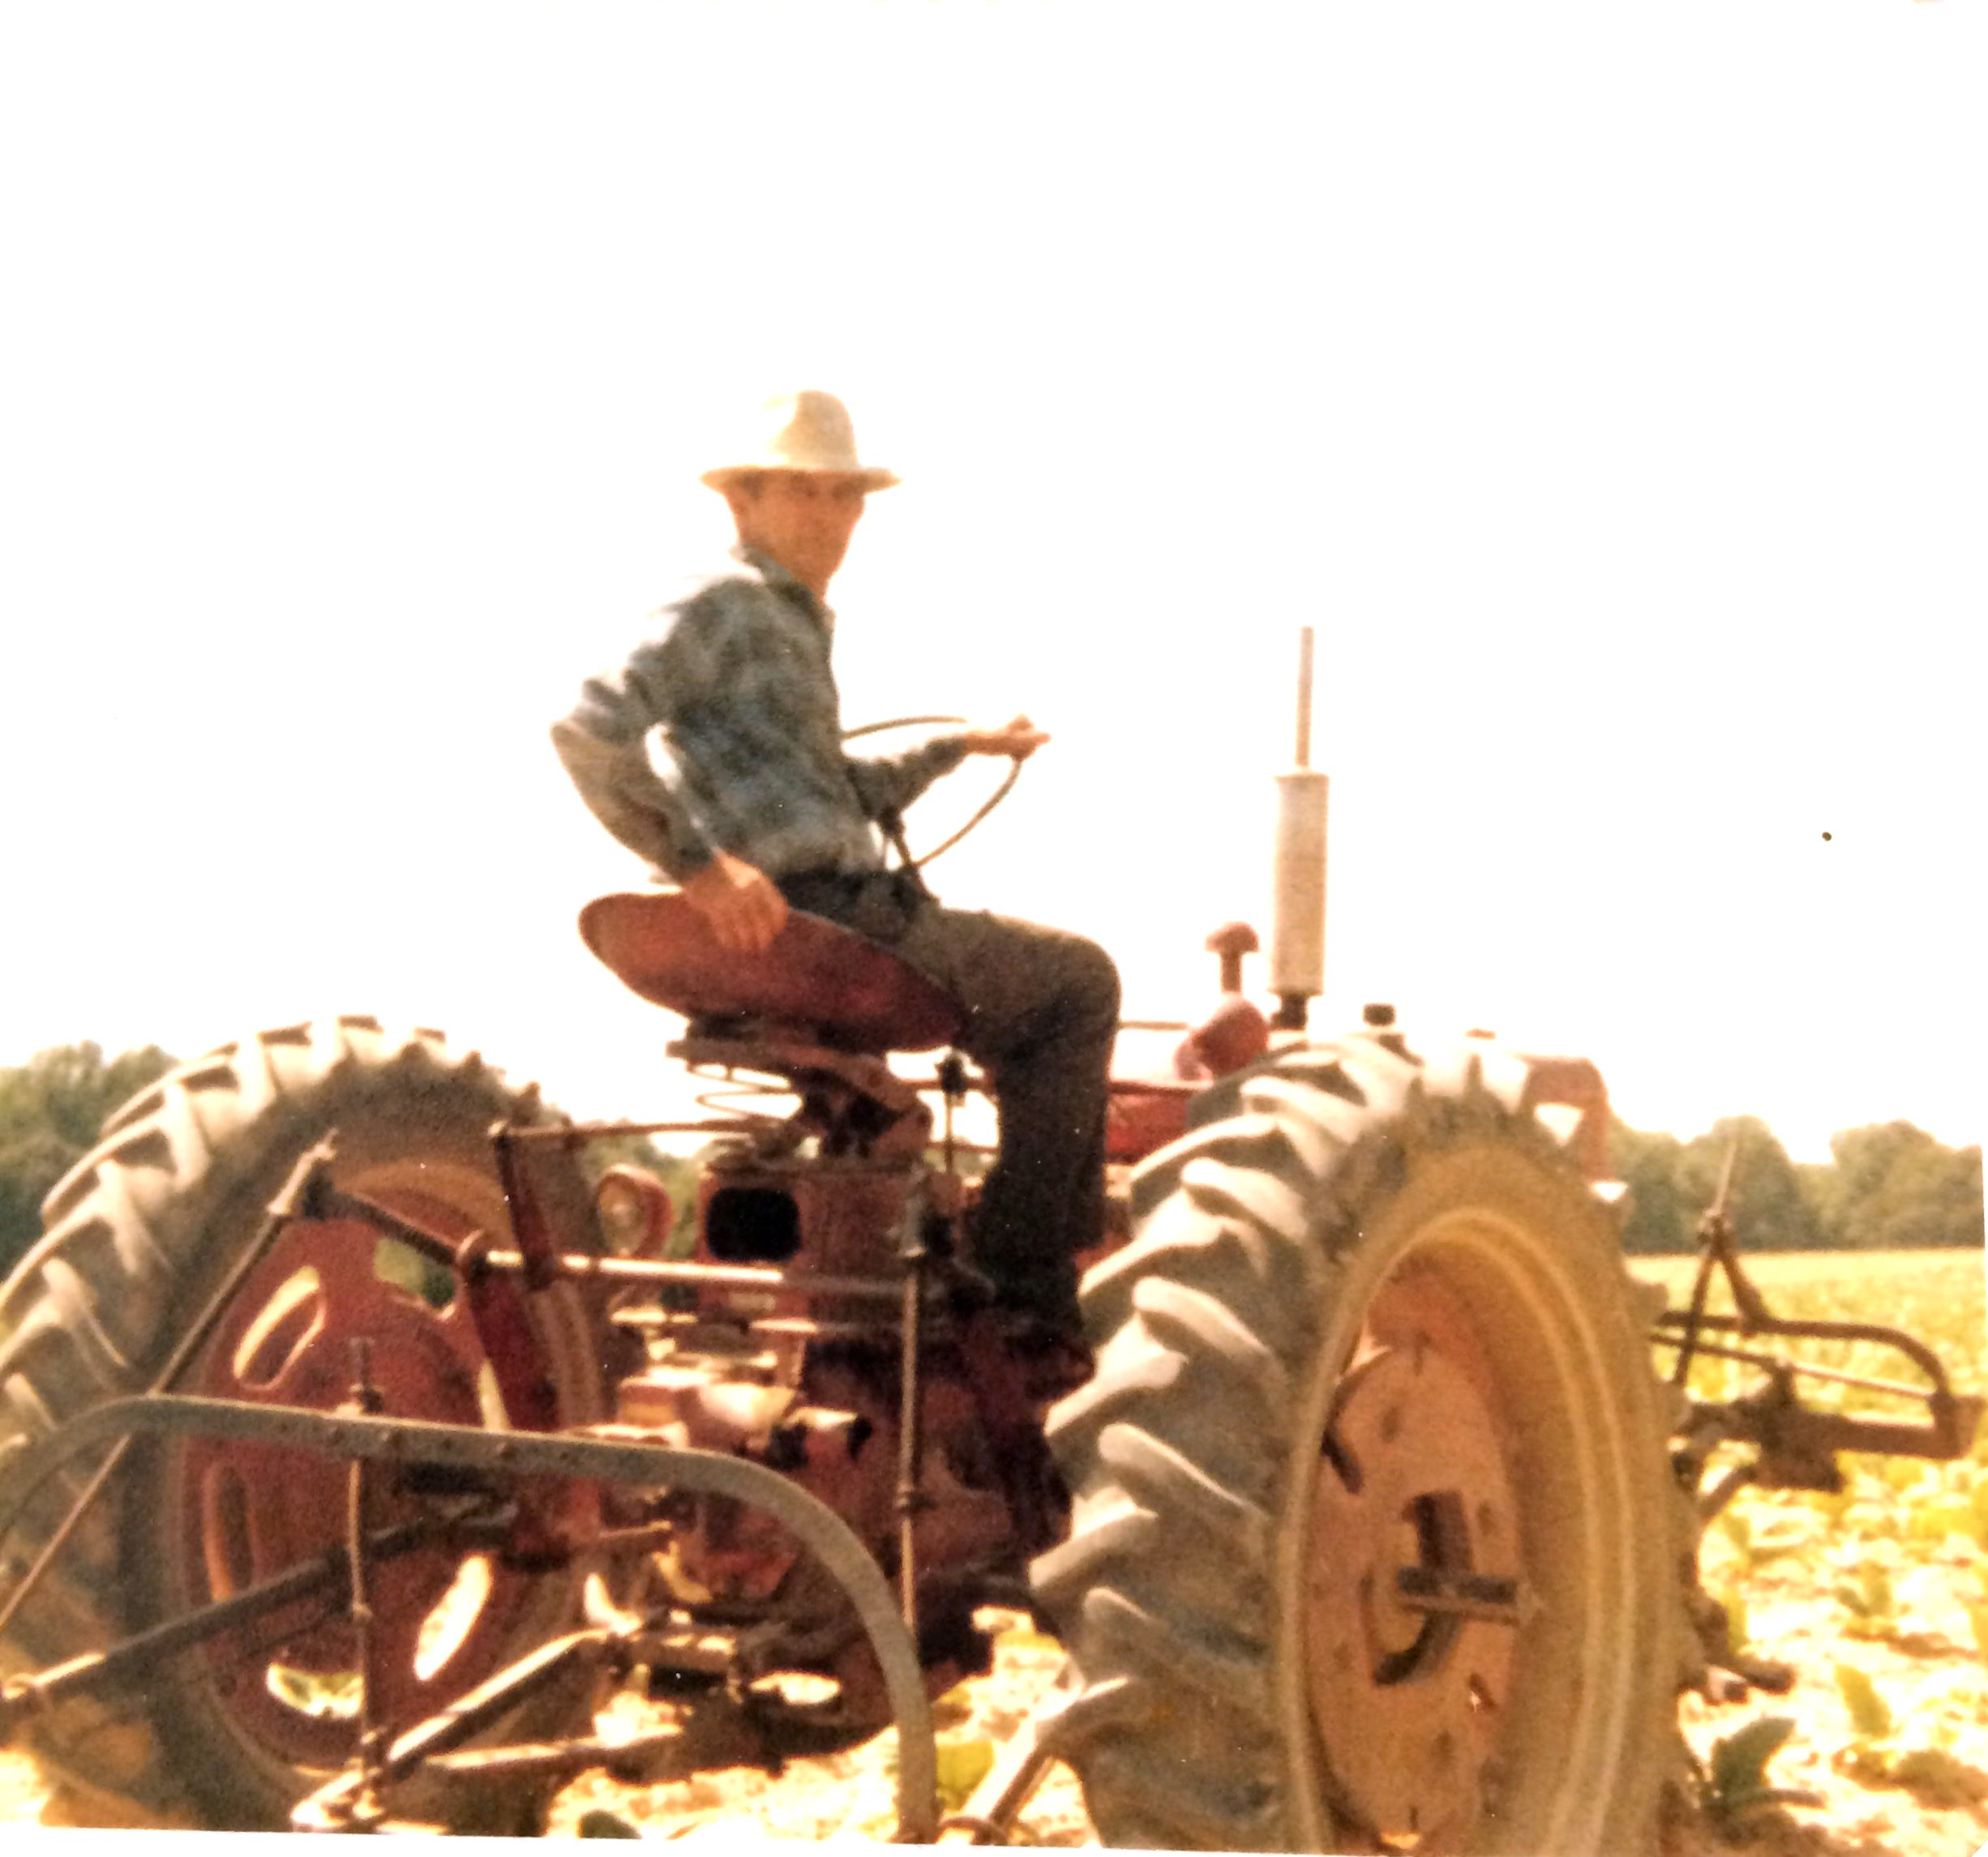 James Jr. cultivating tobacco circa 1978.